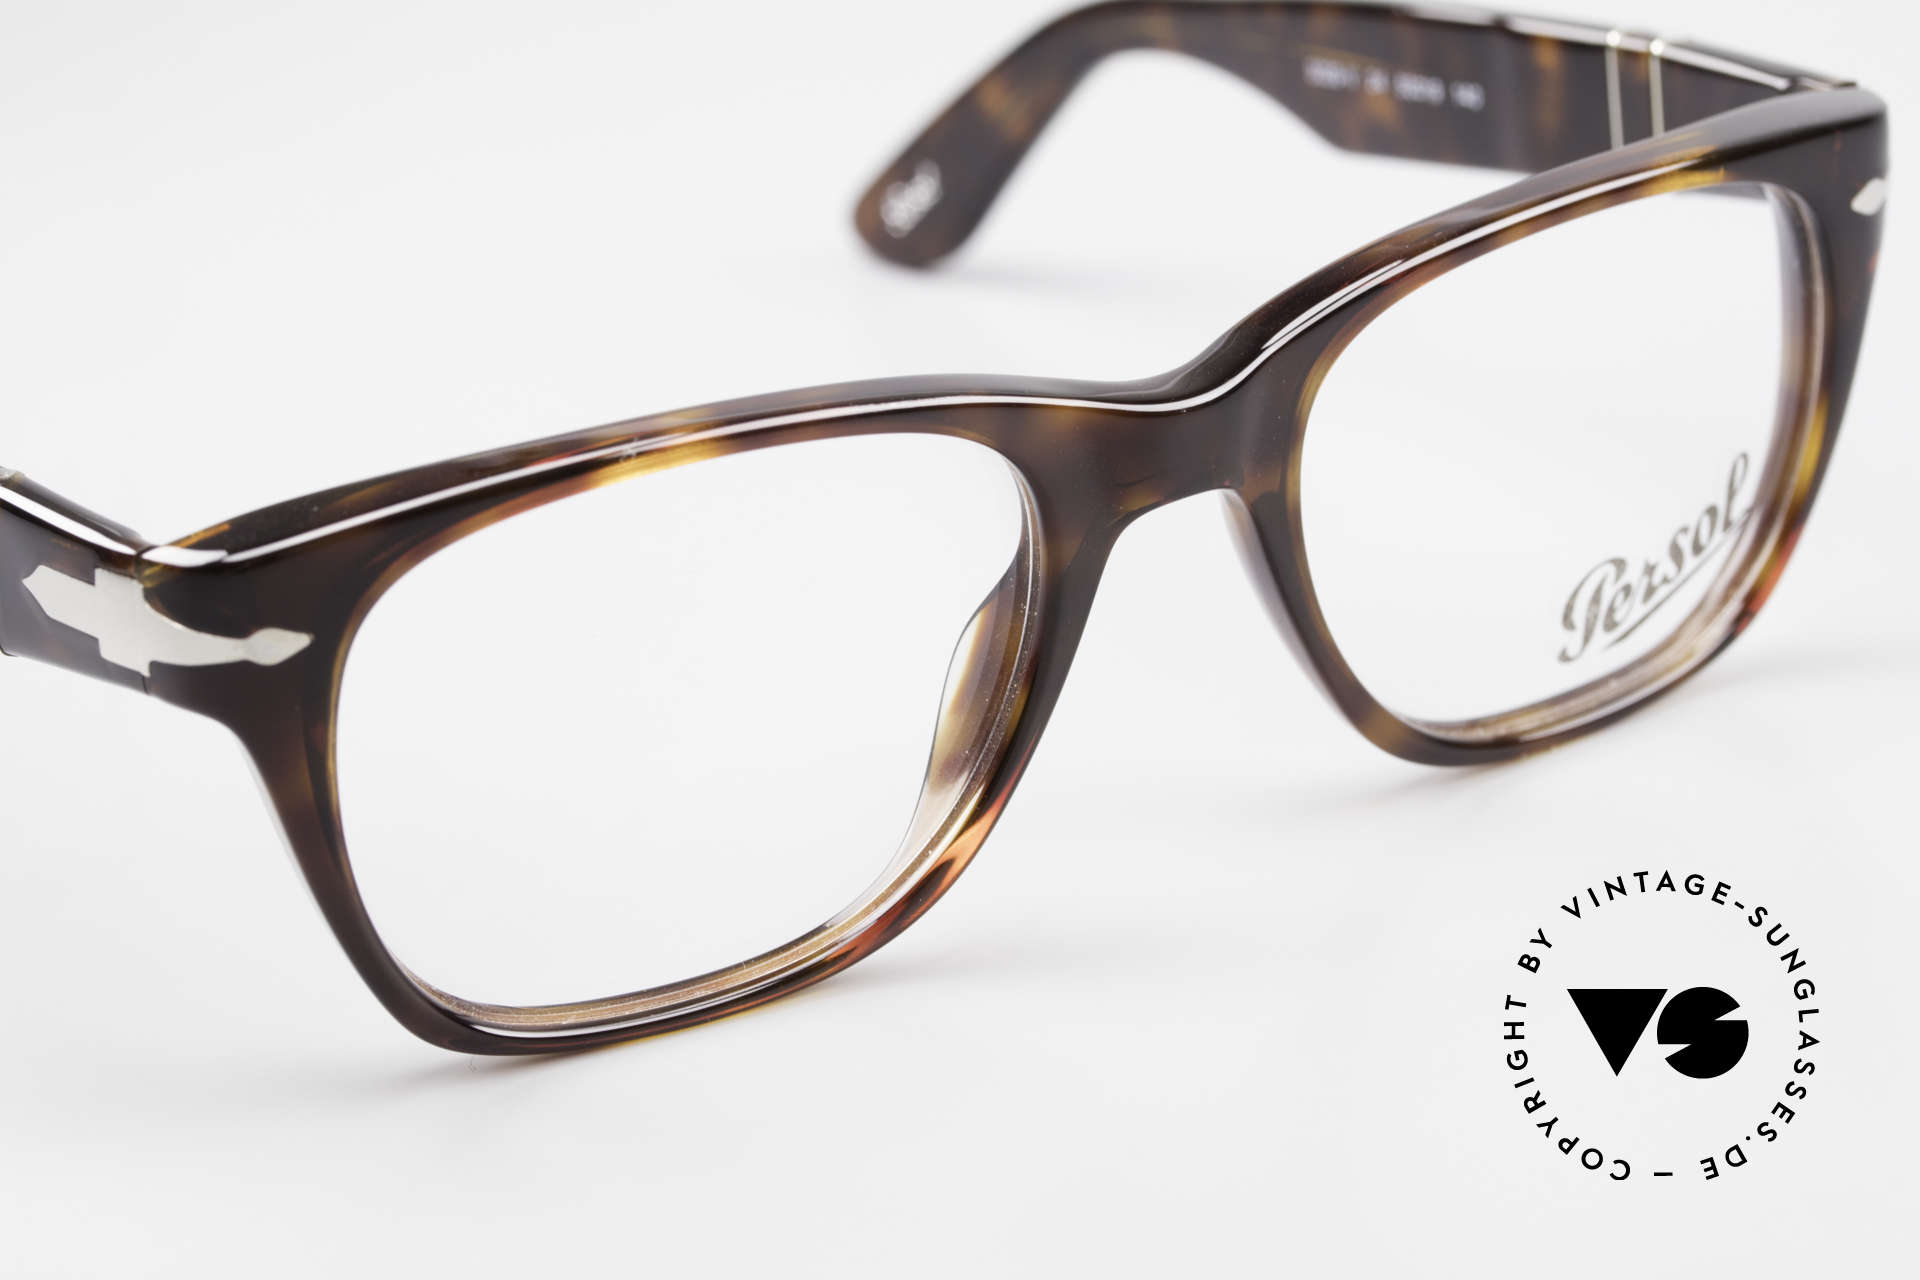 Persol 3039 Timeless Designer Eyeglasses, thus, we decided to take it into our vintage collection, Made for Men and Women